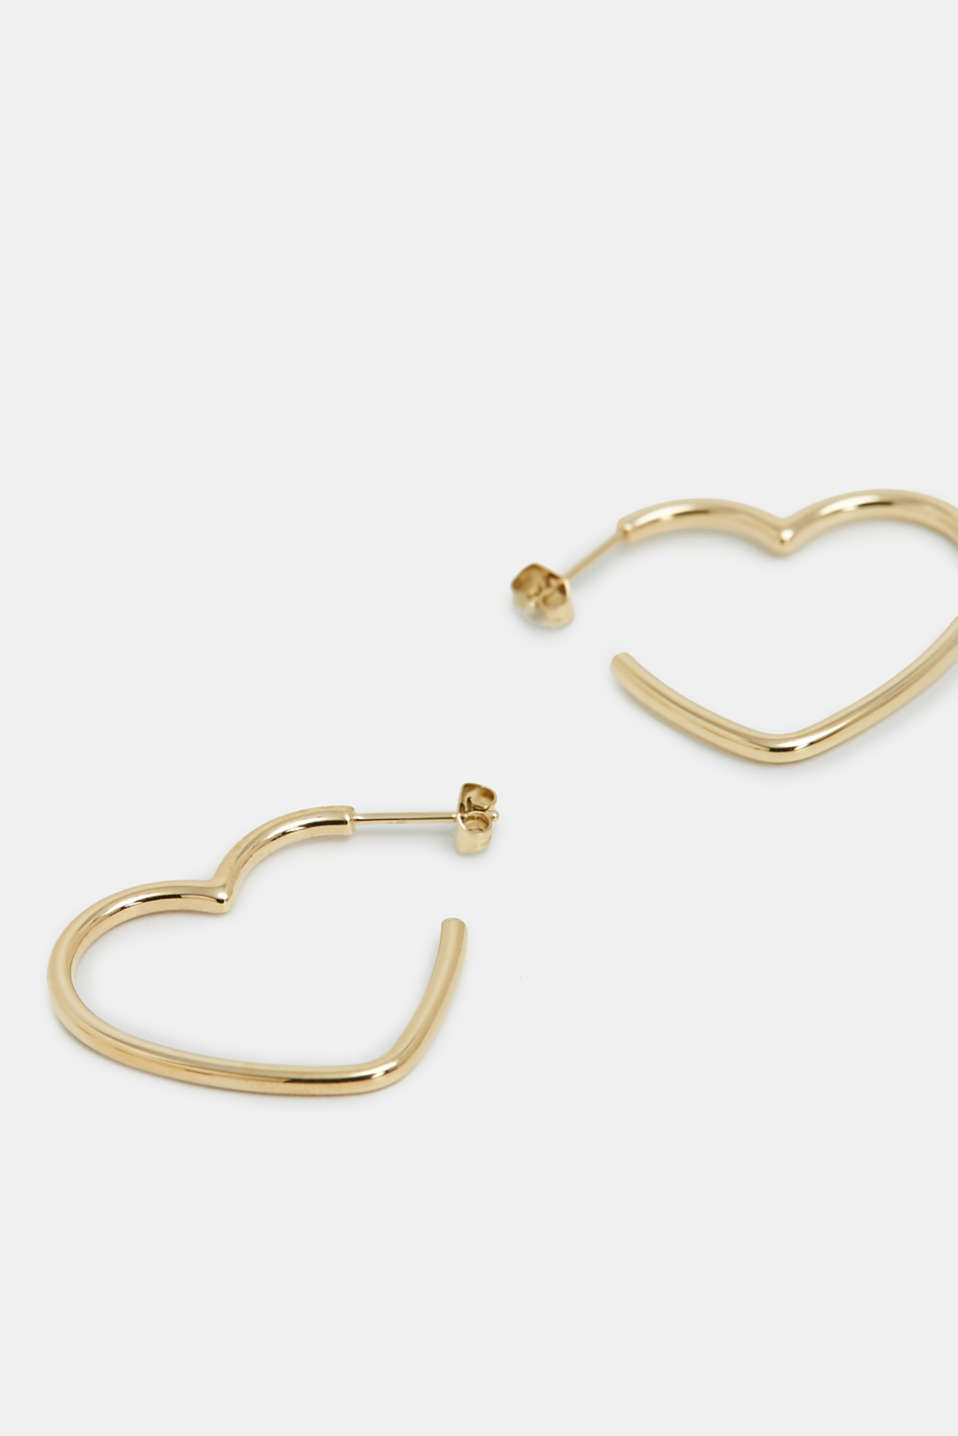 Heart-shaped earrings in stainless steel, GOLD, detail image number 1